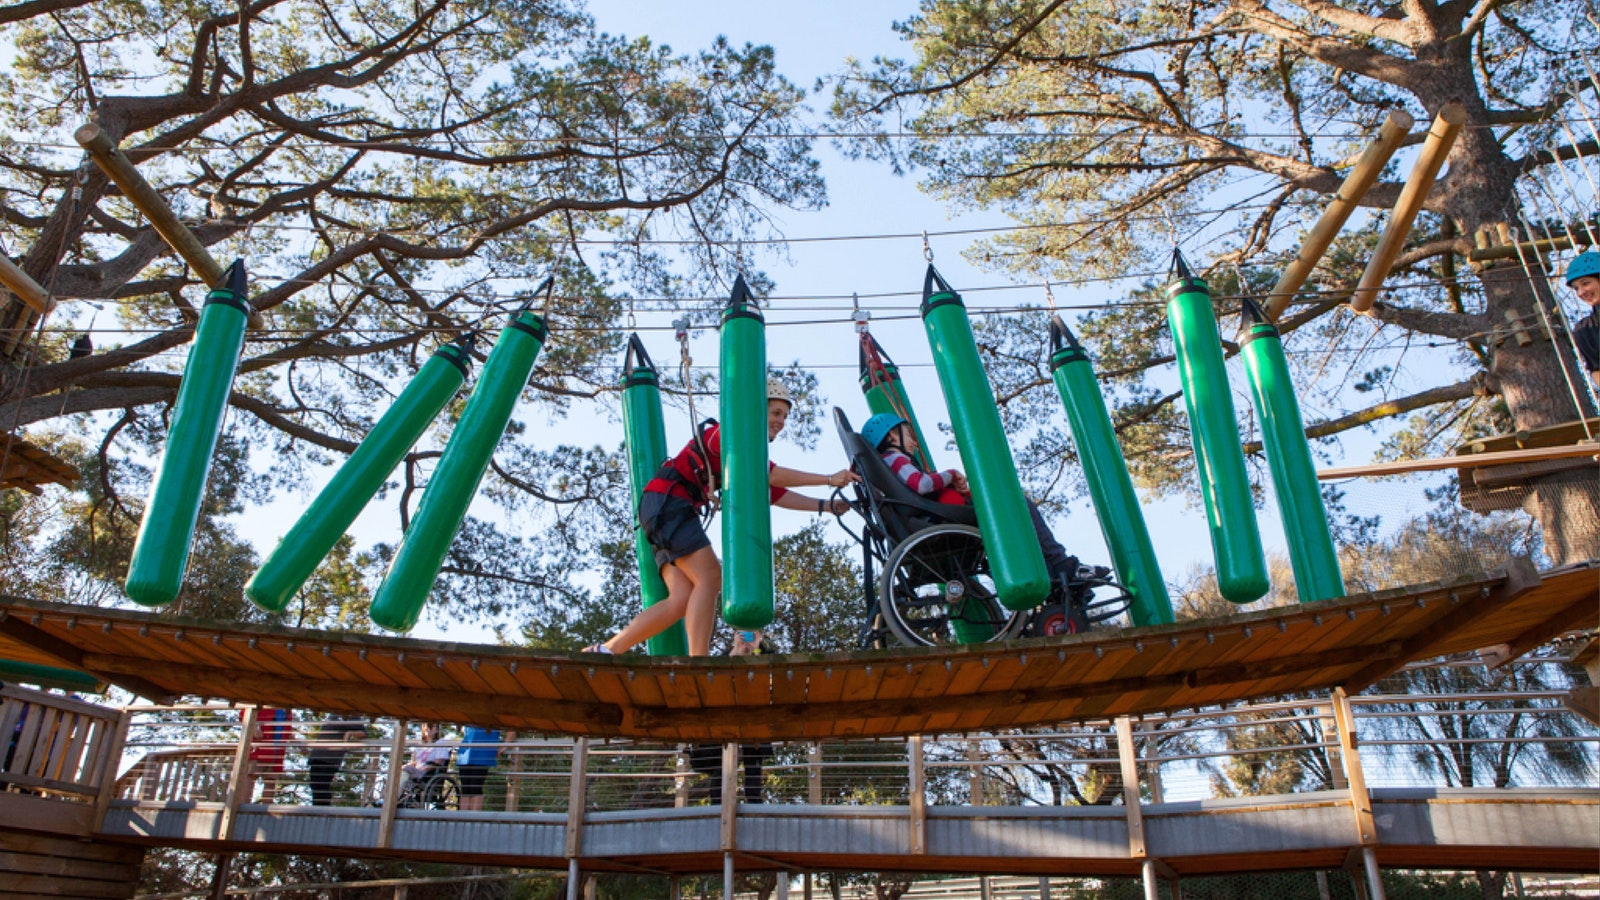 image: boy in wheelchair enjoying accessible ropes course